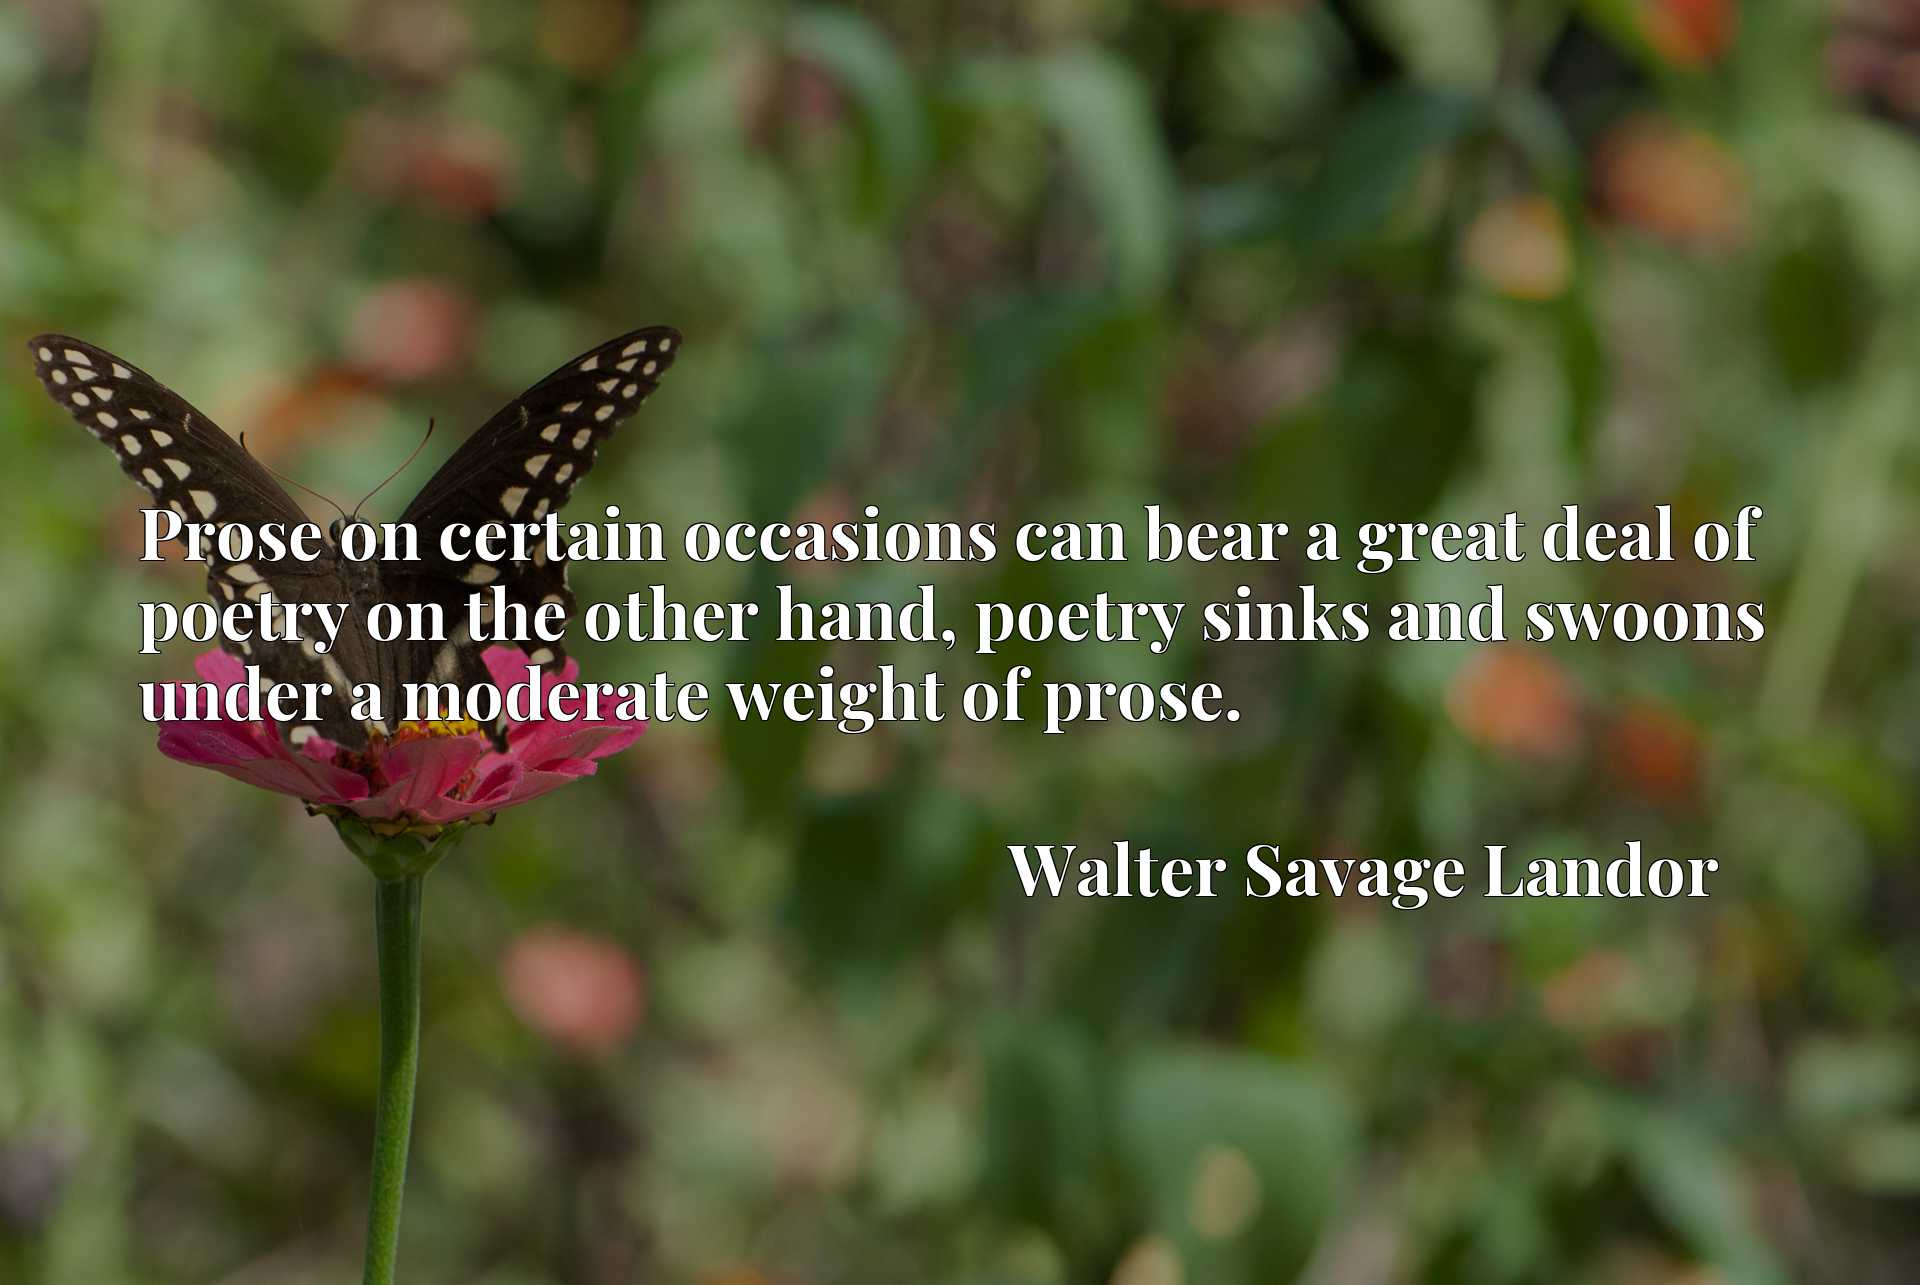 Prose on certain occasions can bear a great deal of poetry on the other hand, poetry sinks and swoons under a moderate weight of prose.